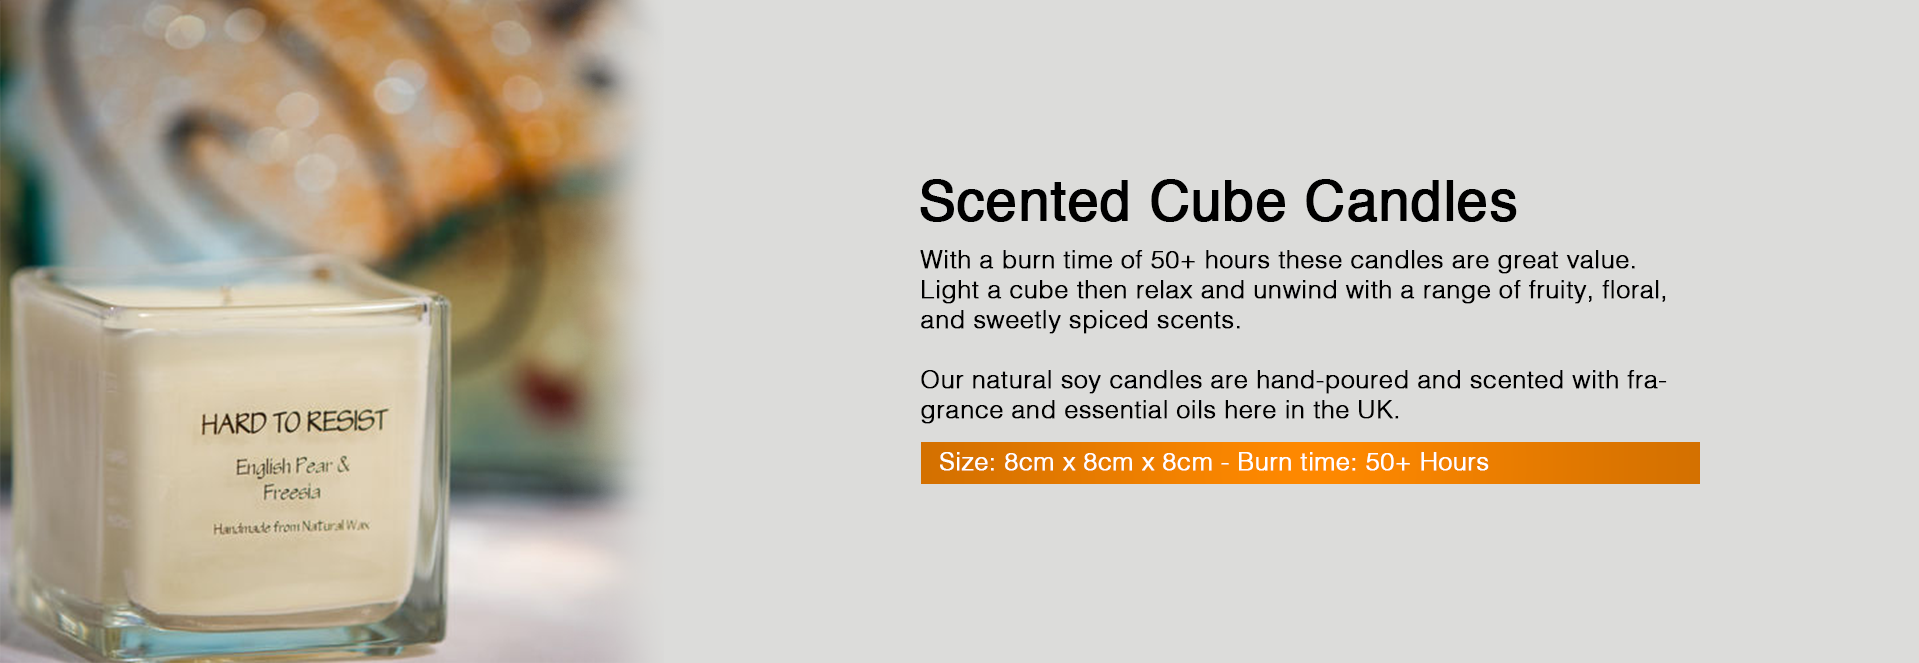 Scented Cube Candles